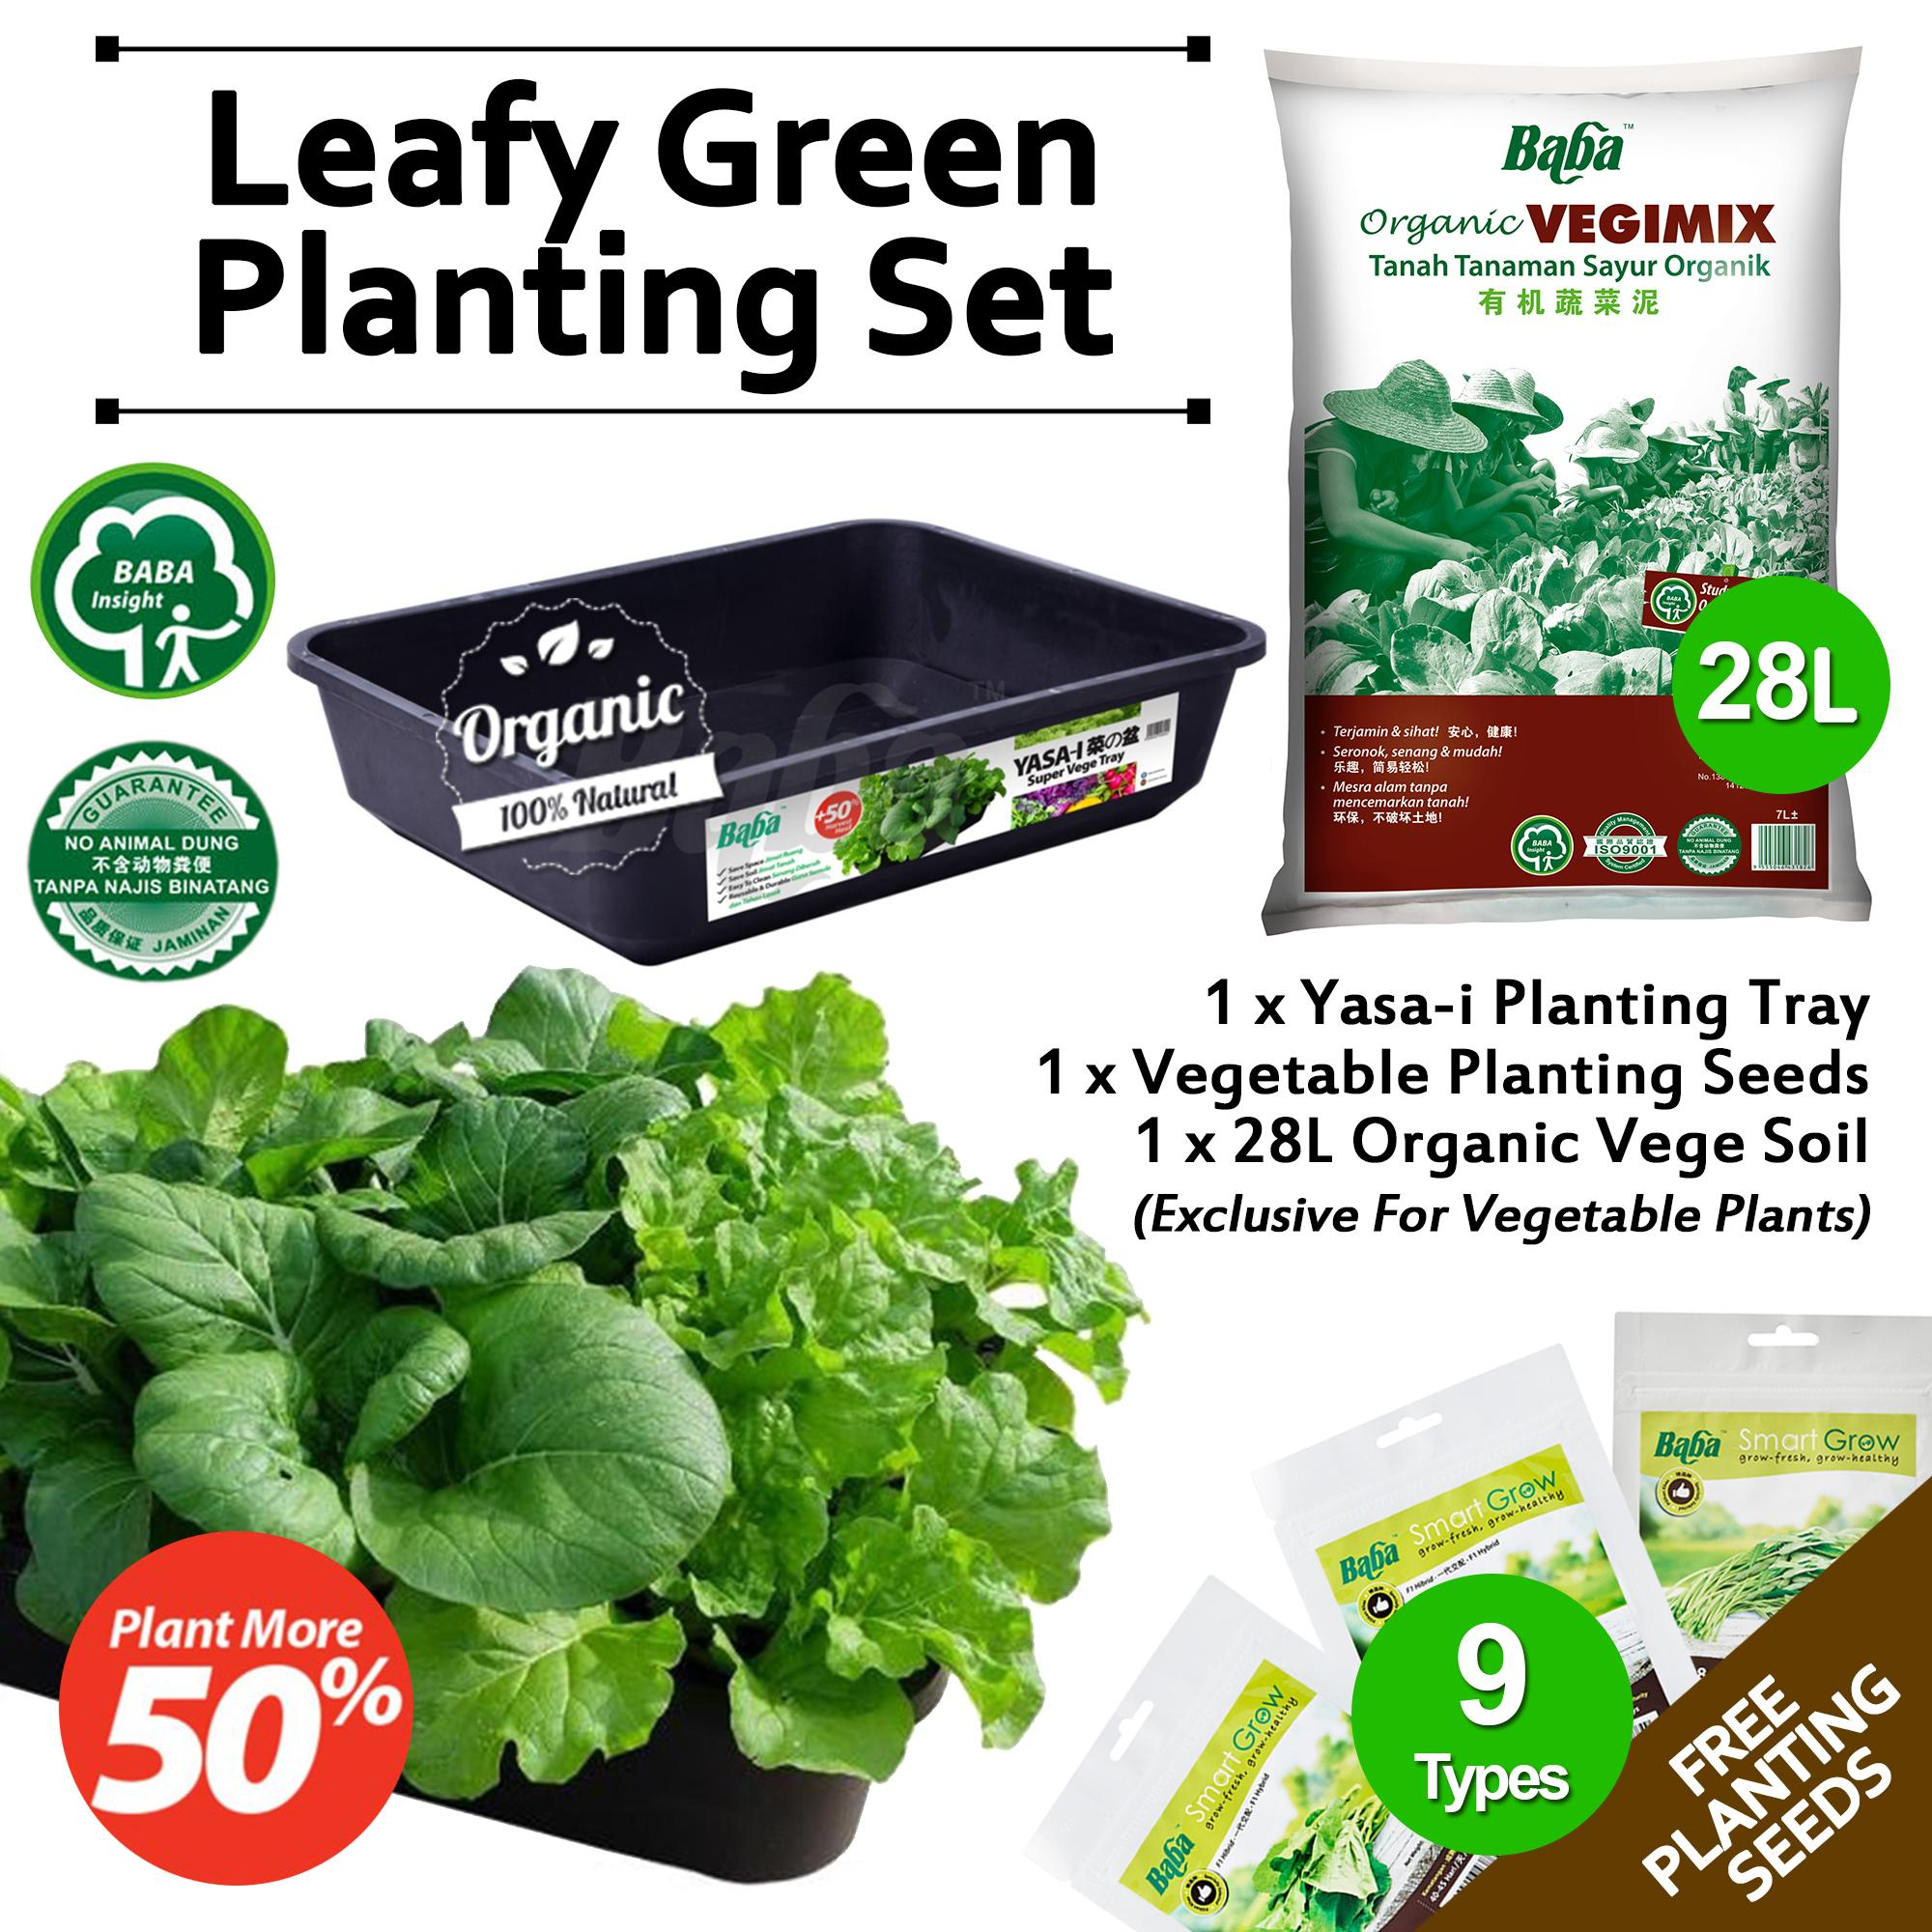 [Combo Deal] Baba Organic Yasa-i Vege Tray with 28L Vegimix Soil [FREE SEEDS]